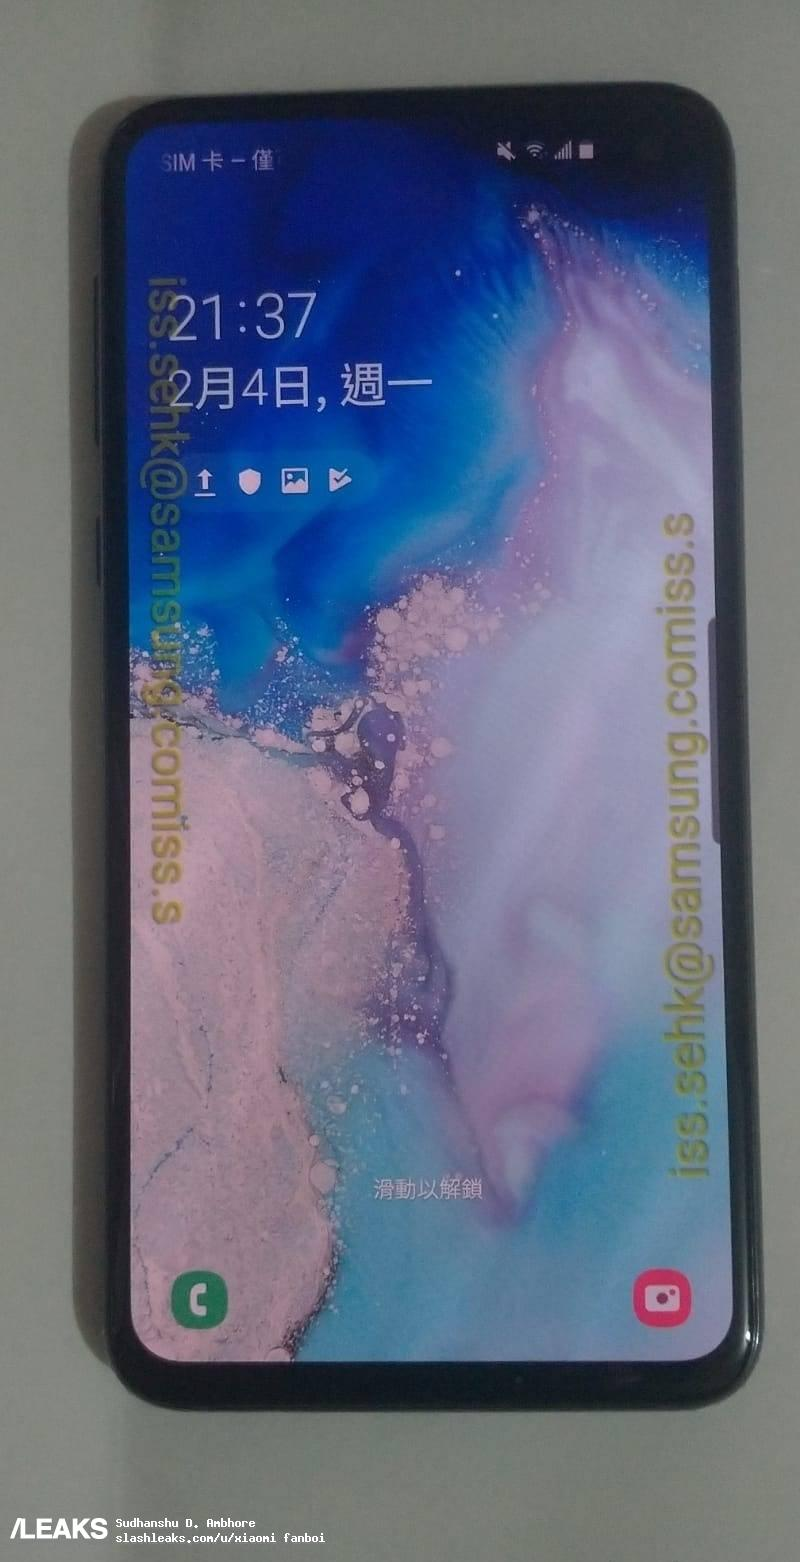 Here are the live images of the Samsung Galaxy S10e